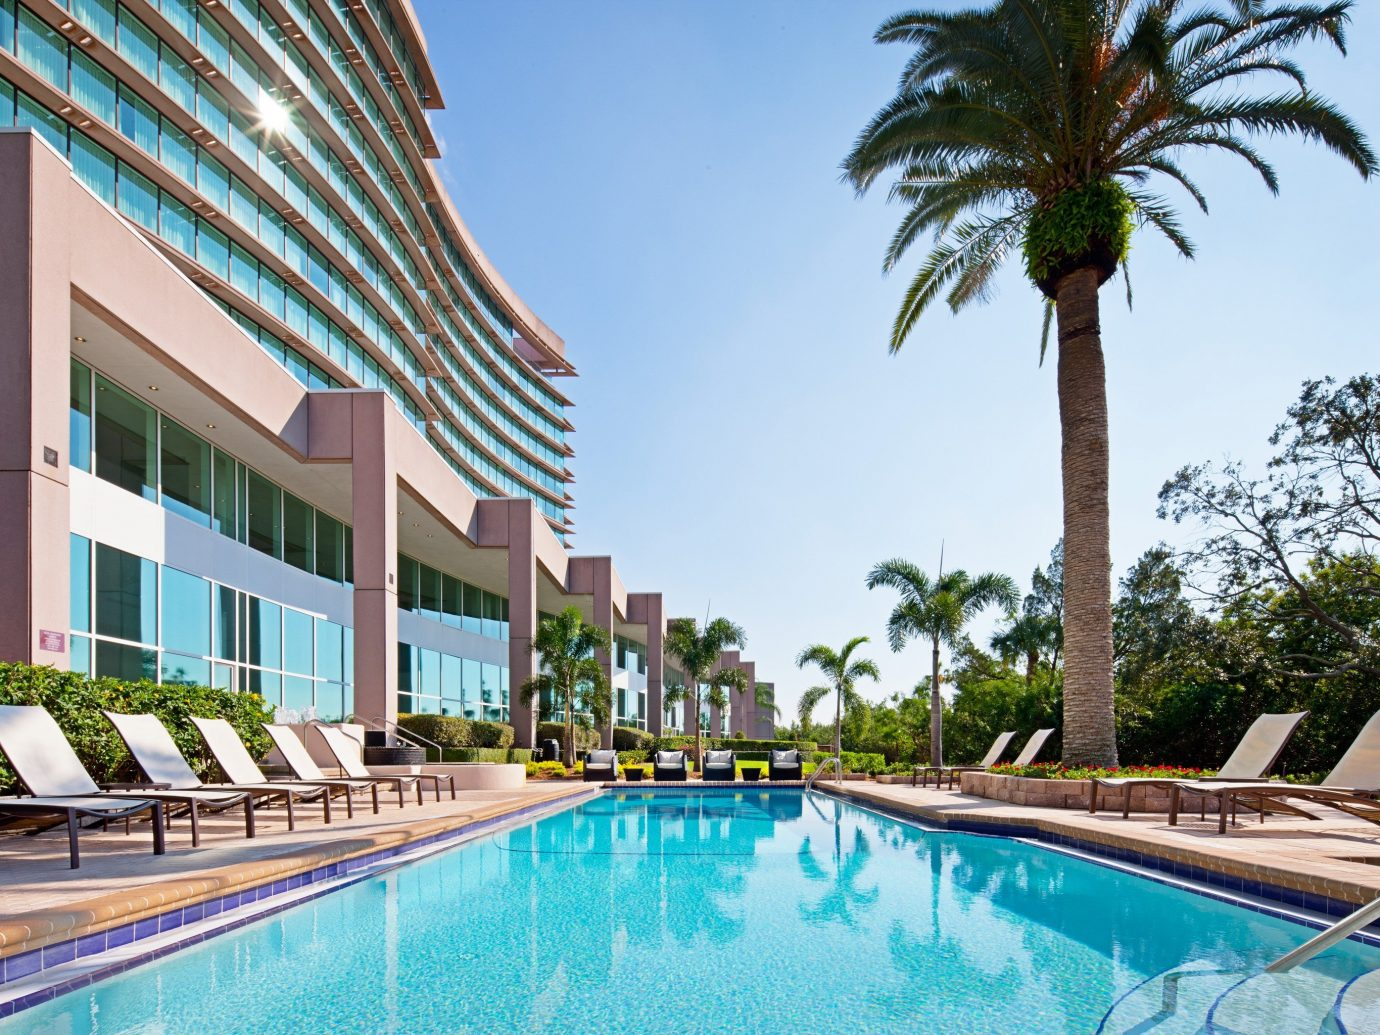 Hotels outdoor building Resort Pool swimming pool leisure condominium property estate vacation real estate Villa plaza arecales palm lined swimming